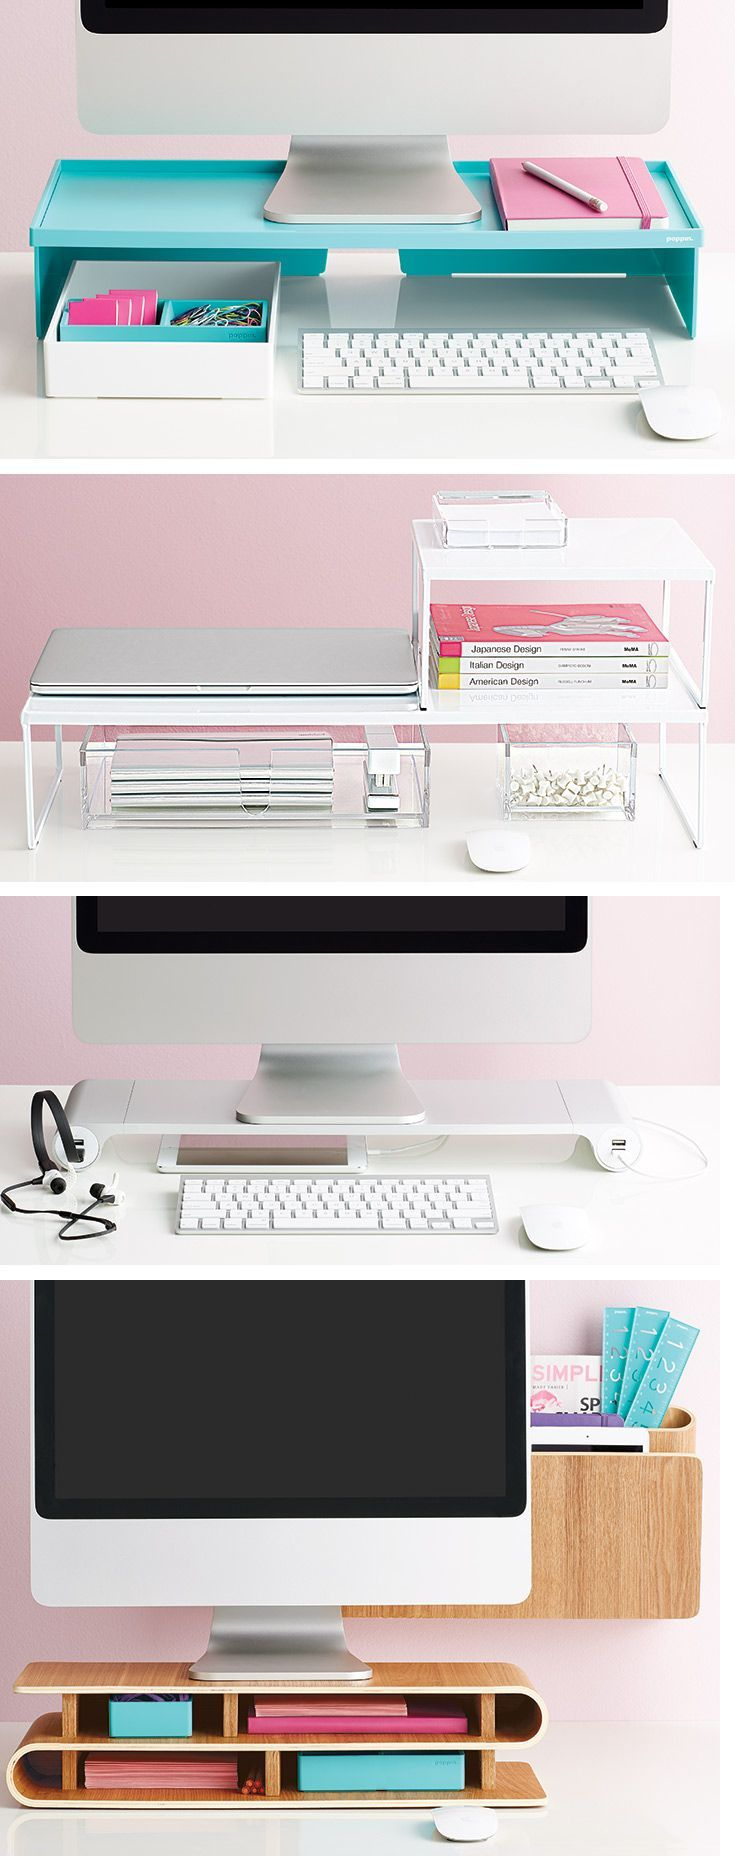 Space bar monitor stand by quirky creative supplies and - Organize computer desk ...